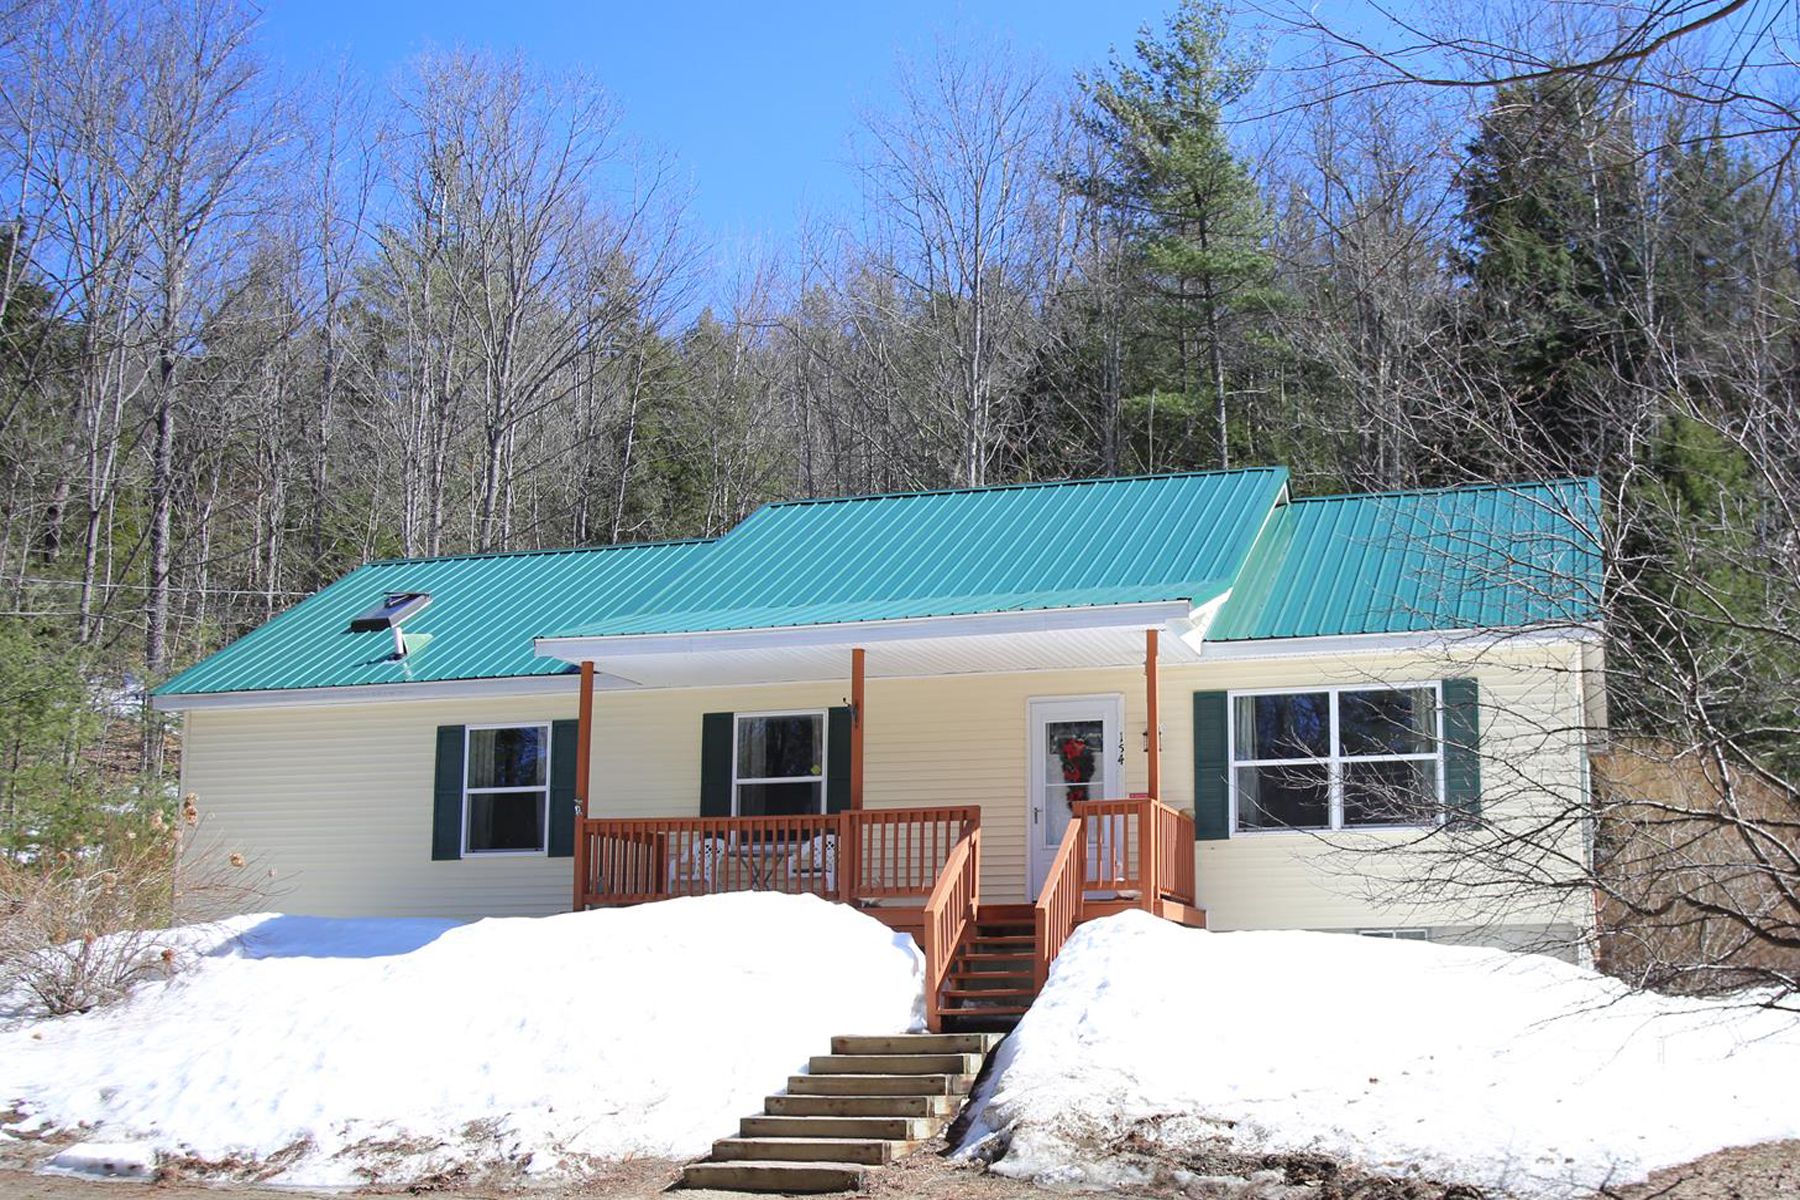 Moradia para Venda às 154 Campground Road, Wilmot 154 Campground Rd Wilmot, New Hampshire, 03287 Estados Unidos